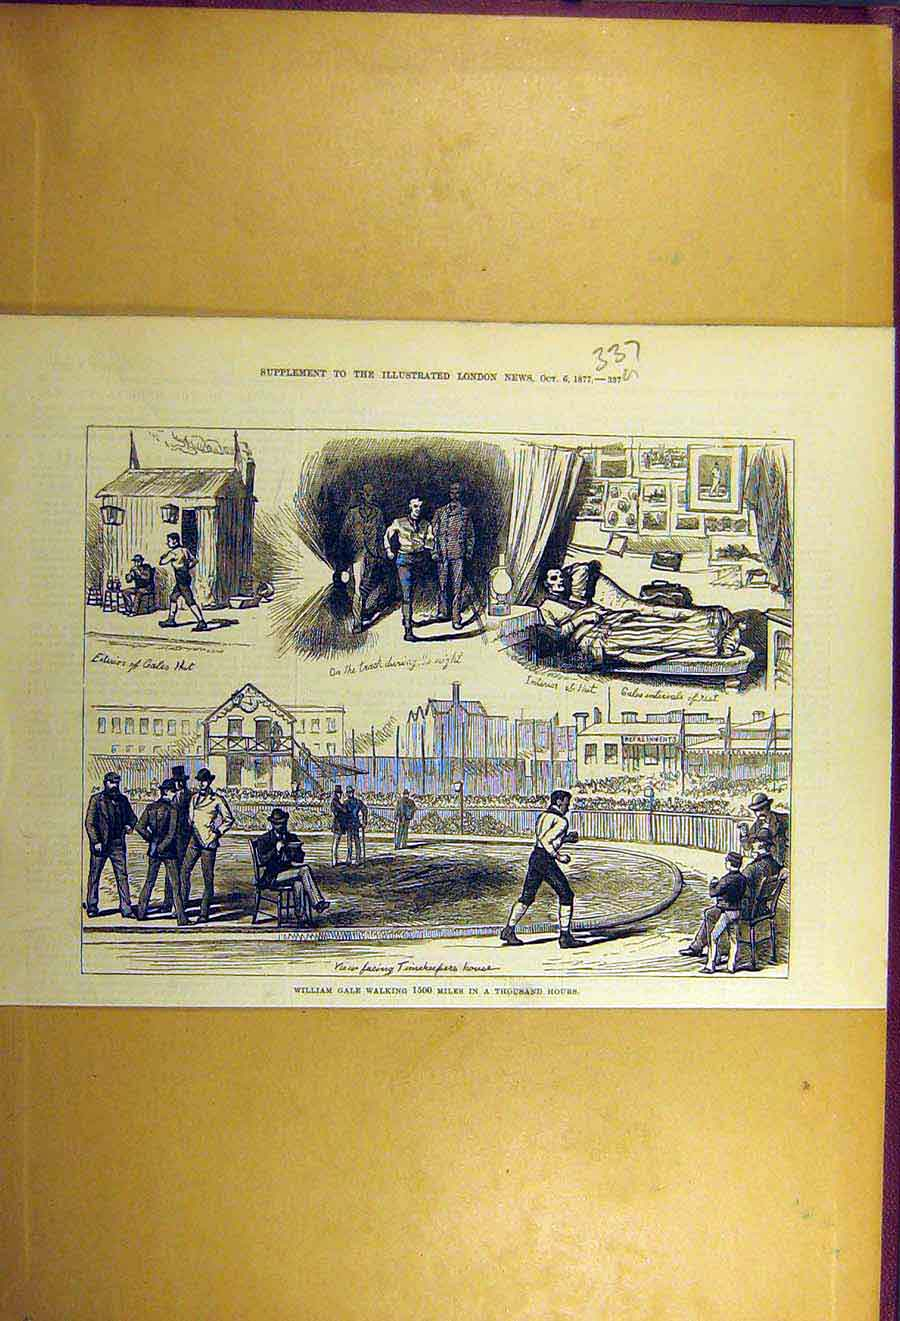 Print 1877 William-Gale Walk Walking 1500-Miles Thousand-Hour 37Uccc1 Old Original